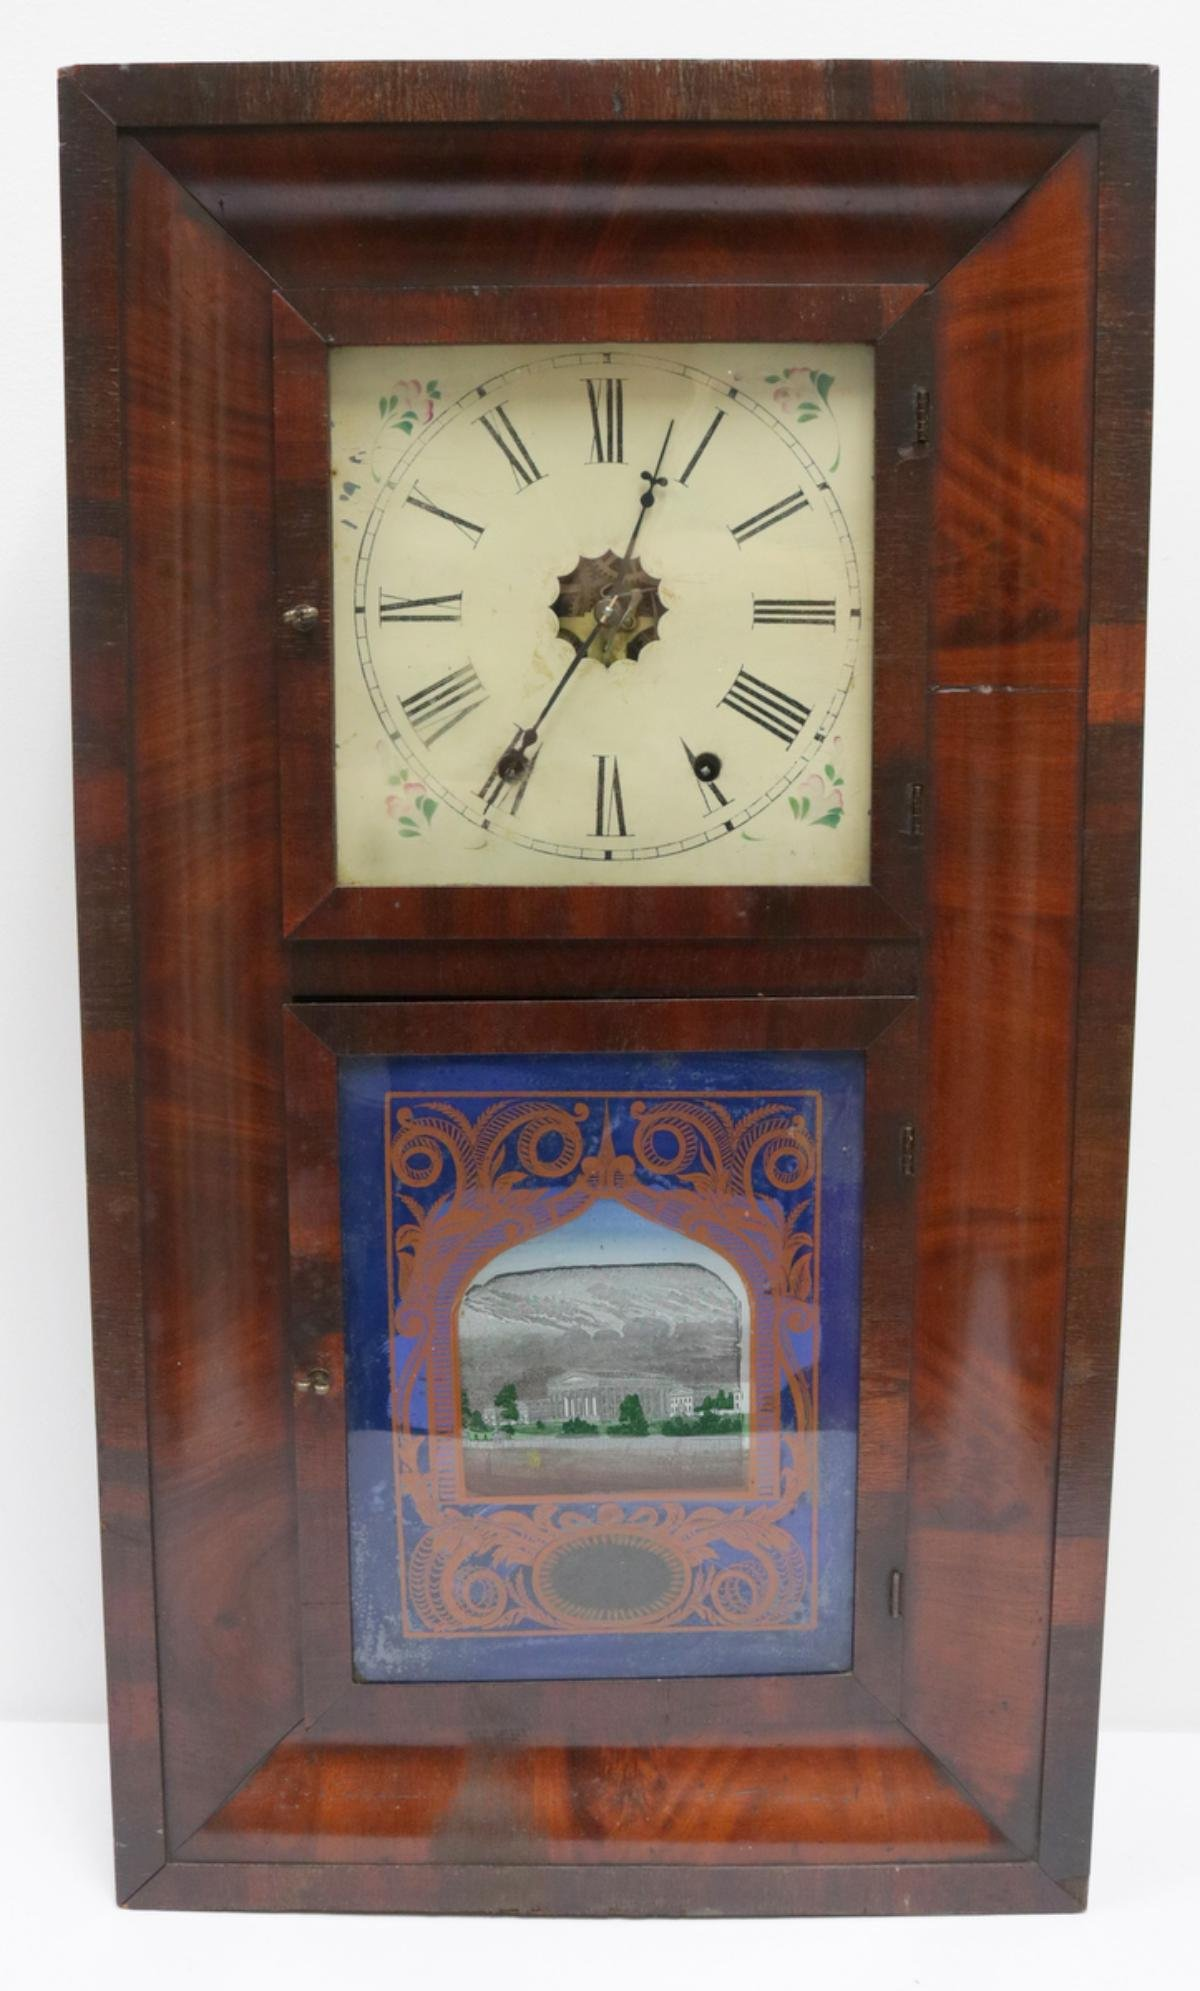 Antique Jerome & Co. Wooden Wall Clock